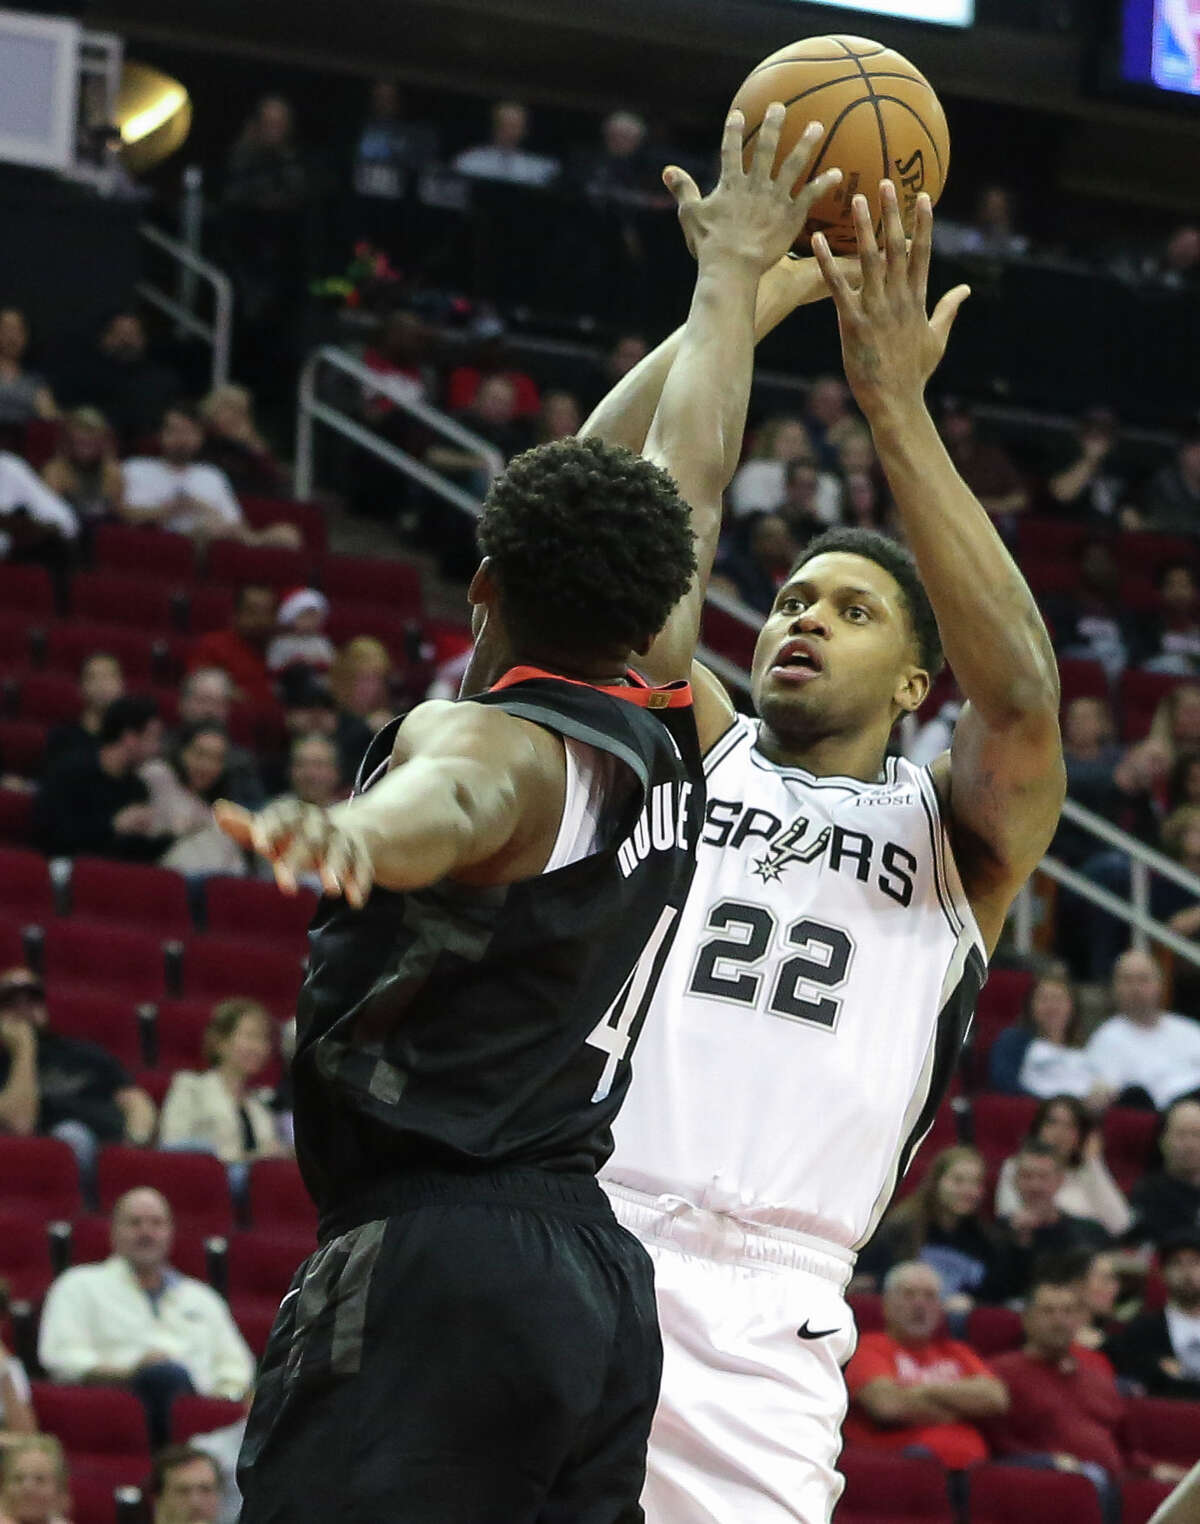 San Antonio Spurs forward Rudy Gay (22) aims for the basket while Houston Rockets forward Danuel House Jr. (4) is trying to stop him during the first quarter of the NBA game at Toyota Center on Saturday, Dec. 22, 2018, in Houston.